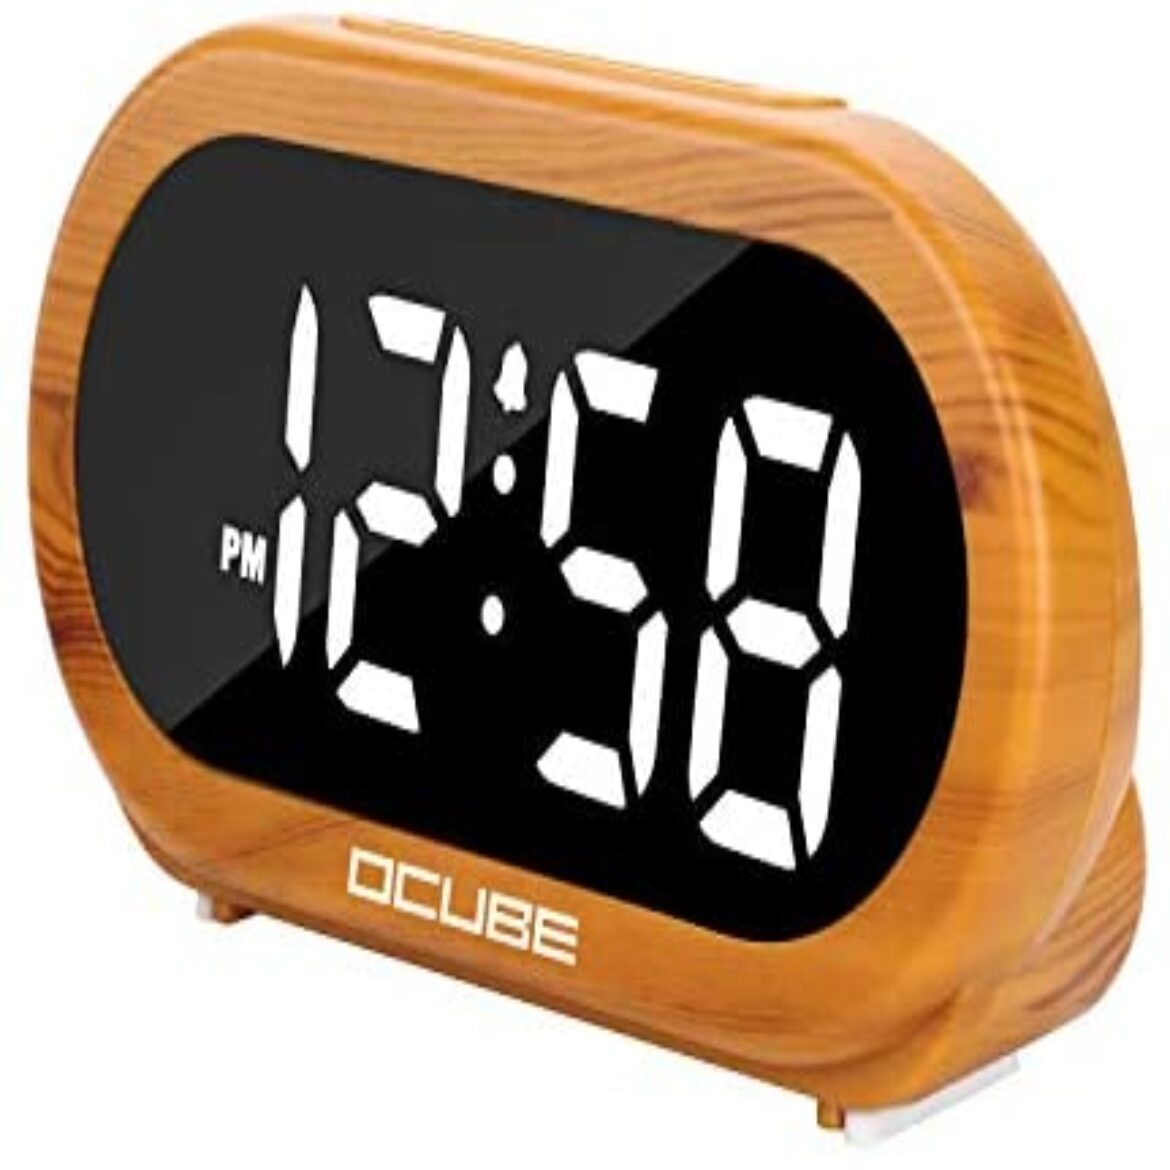 OCUBE Digital Dread Clock, Bedside Clock with 5 Now not mandatory Dread Sounds, 0-100% Dimmer, Adjustable Dread Quantity, Straightforward to Exercise, USB Charger, Extensive Digit Point to, Snooze, 12/24Hr, Mains Powered(Wooden Grain)